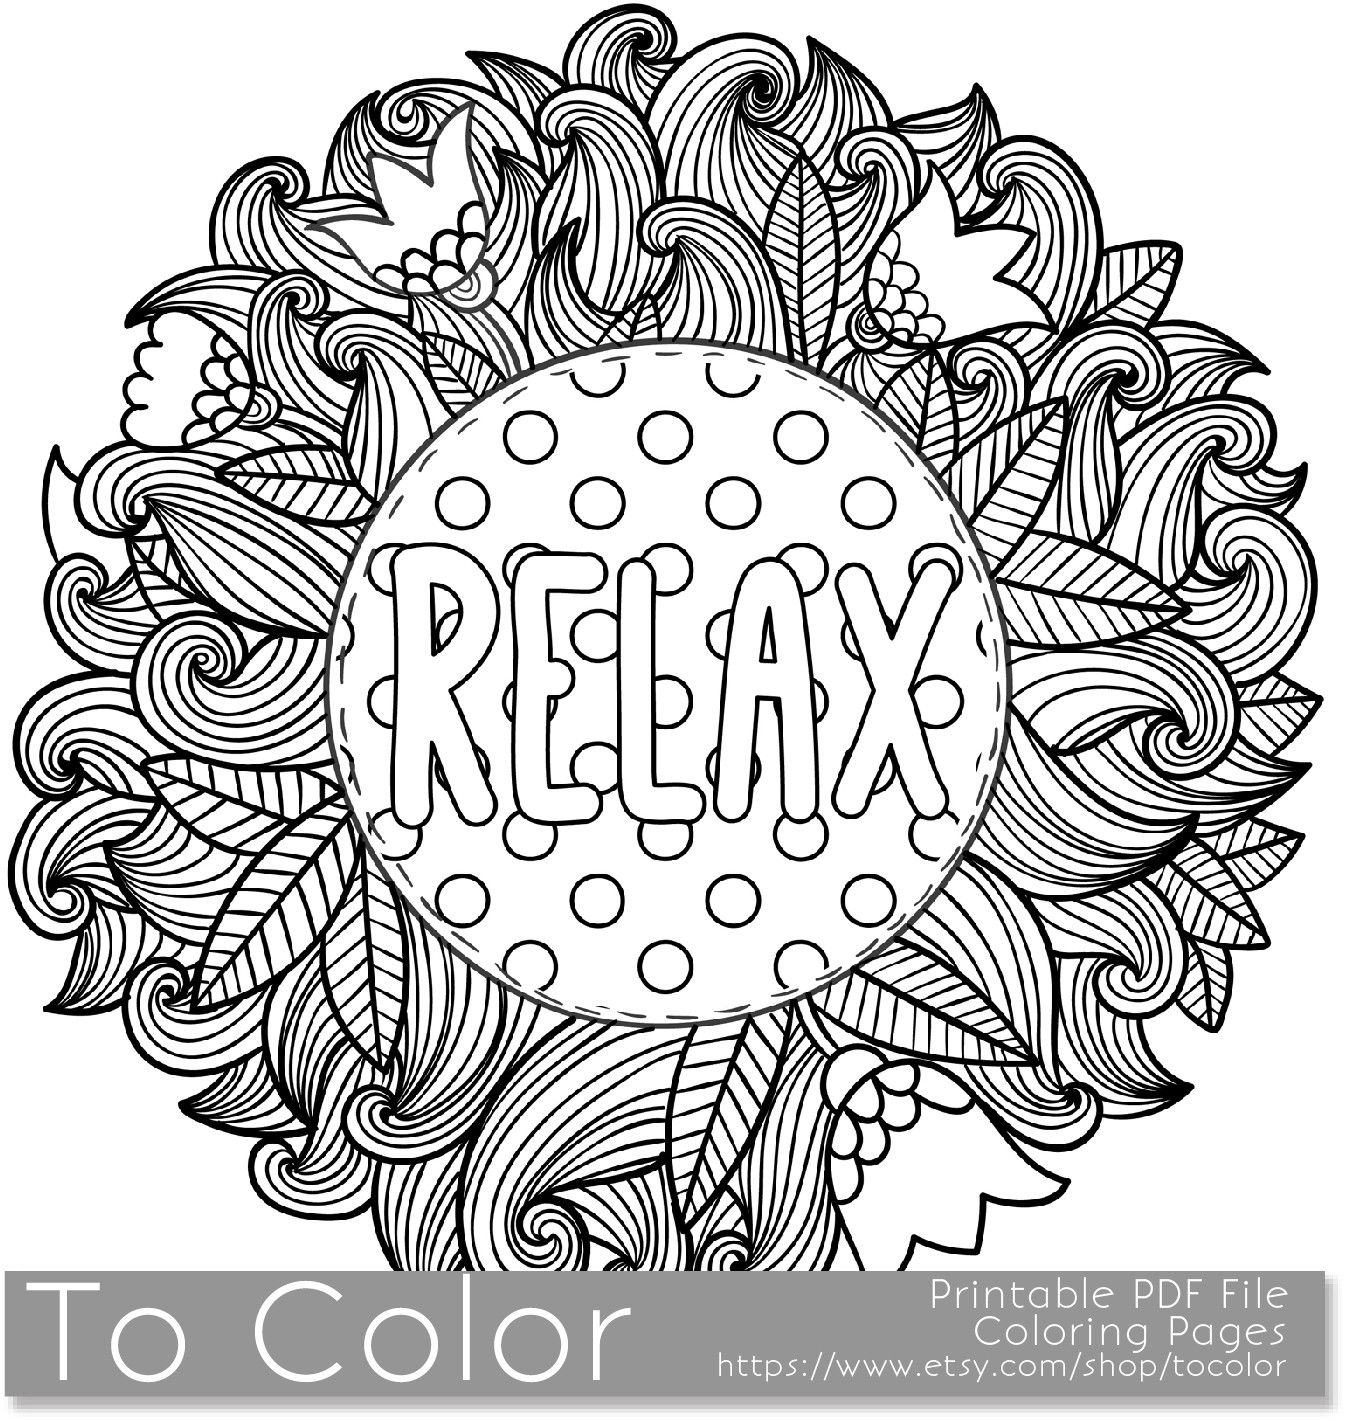 printable relax coloring page for adults pdf jpg instant - My Color Book Printable